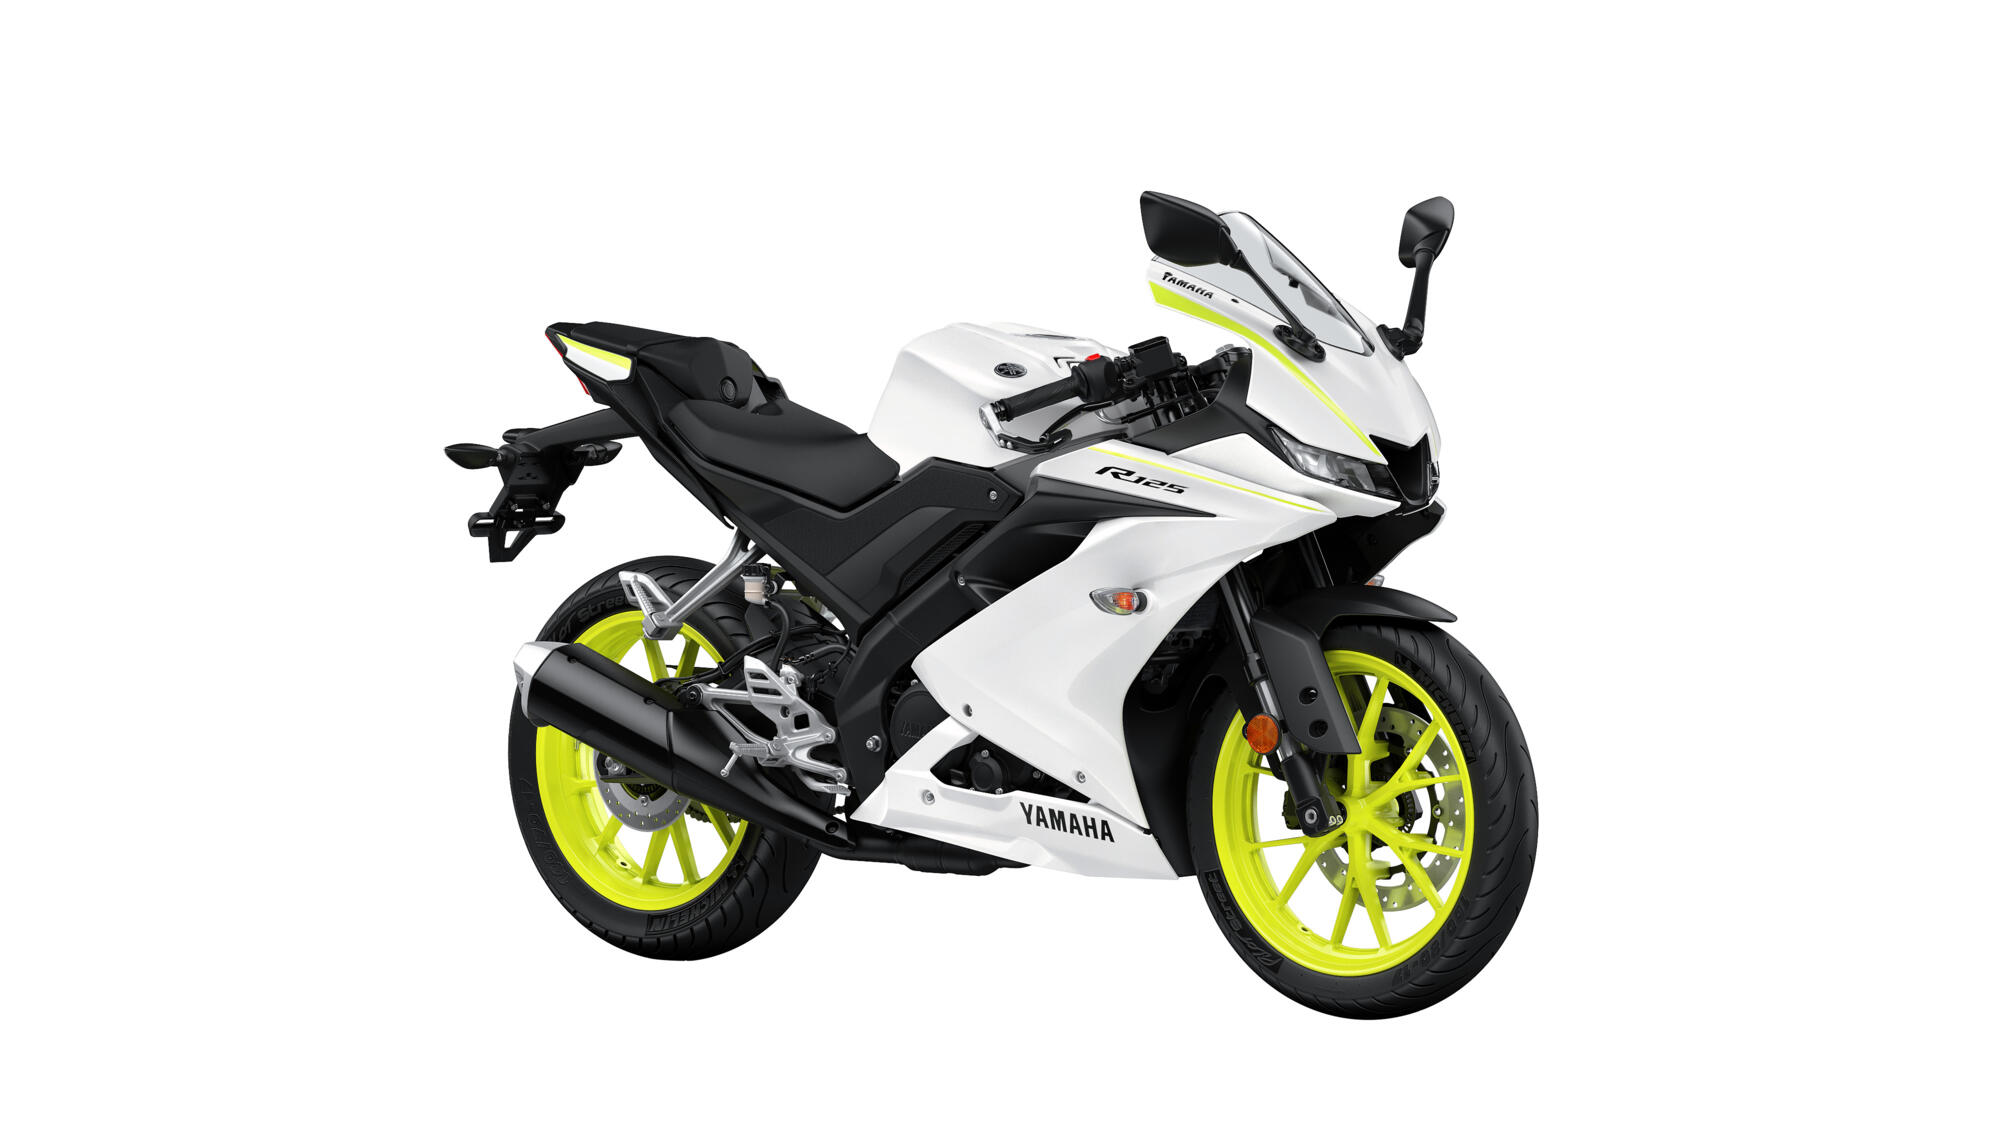 yzf r125 motos yamaha motor. Black Bedroom Furniture Sets. Home Design Ideas